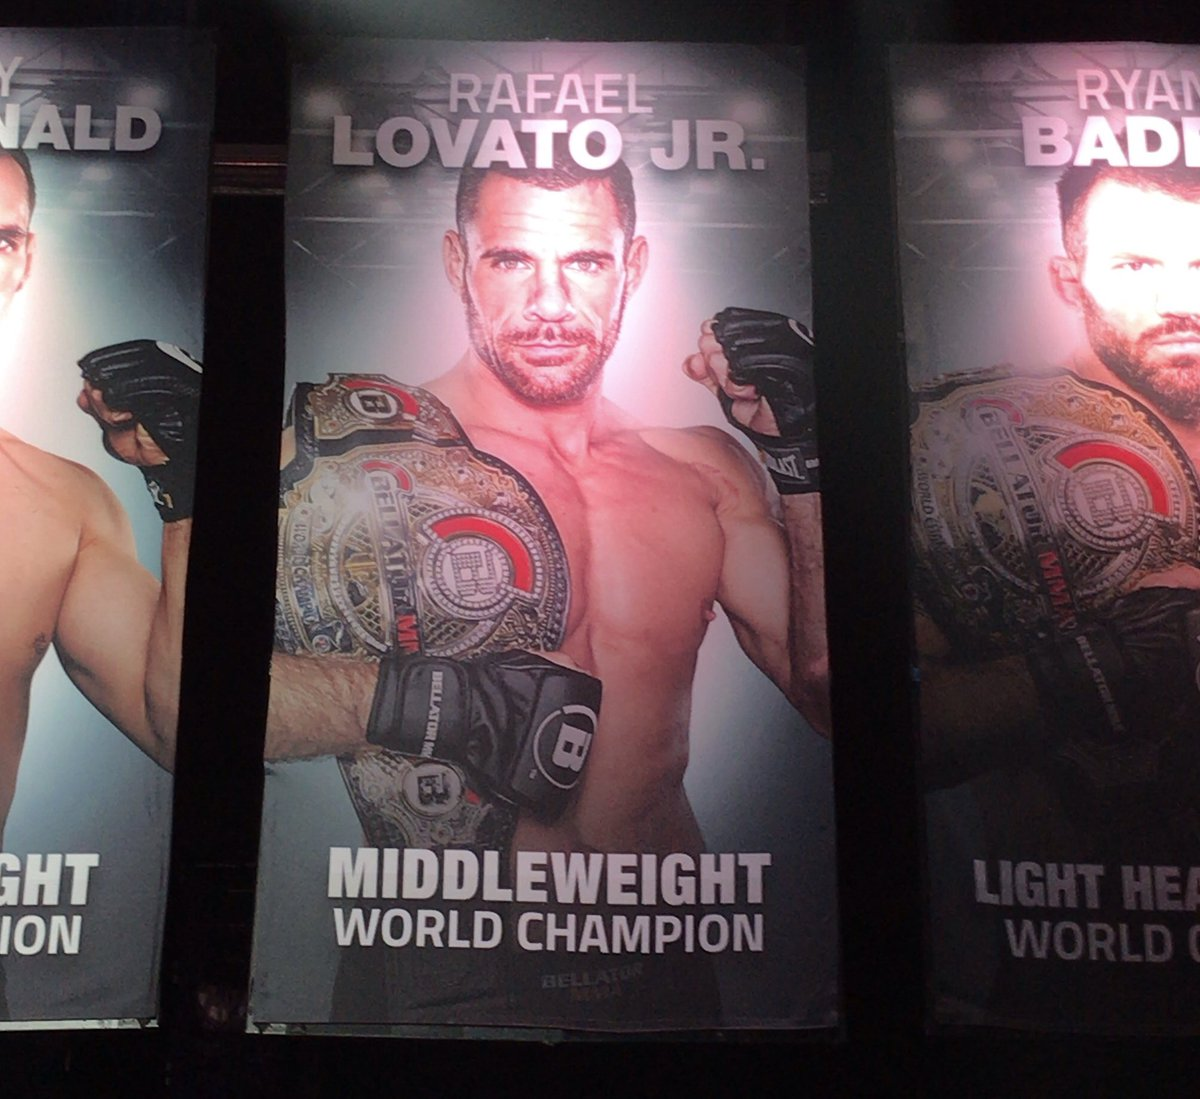 Welcome to Champions Row @lovatojrbjj